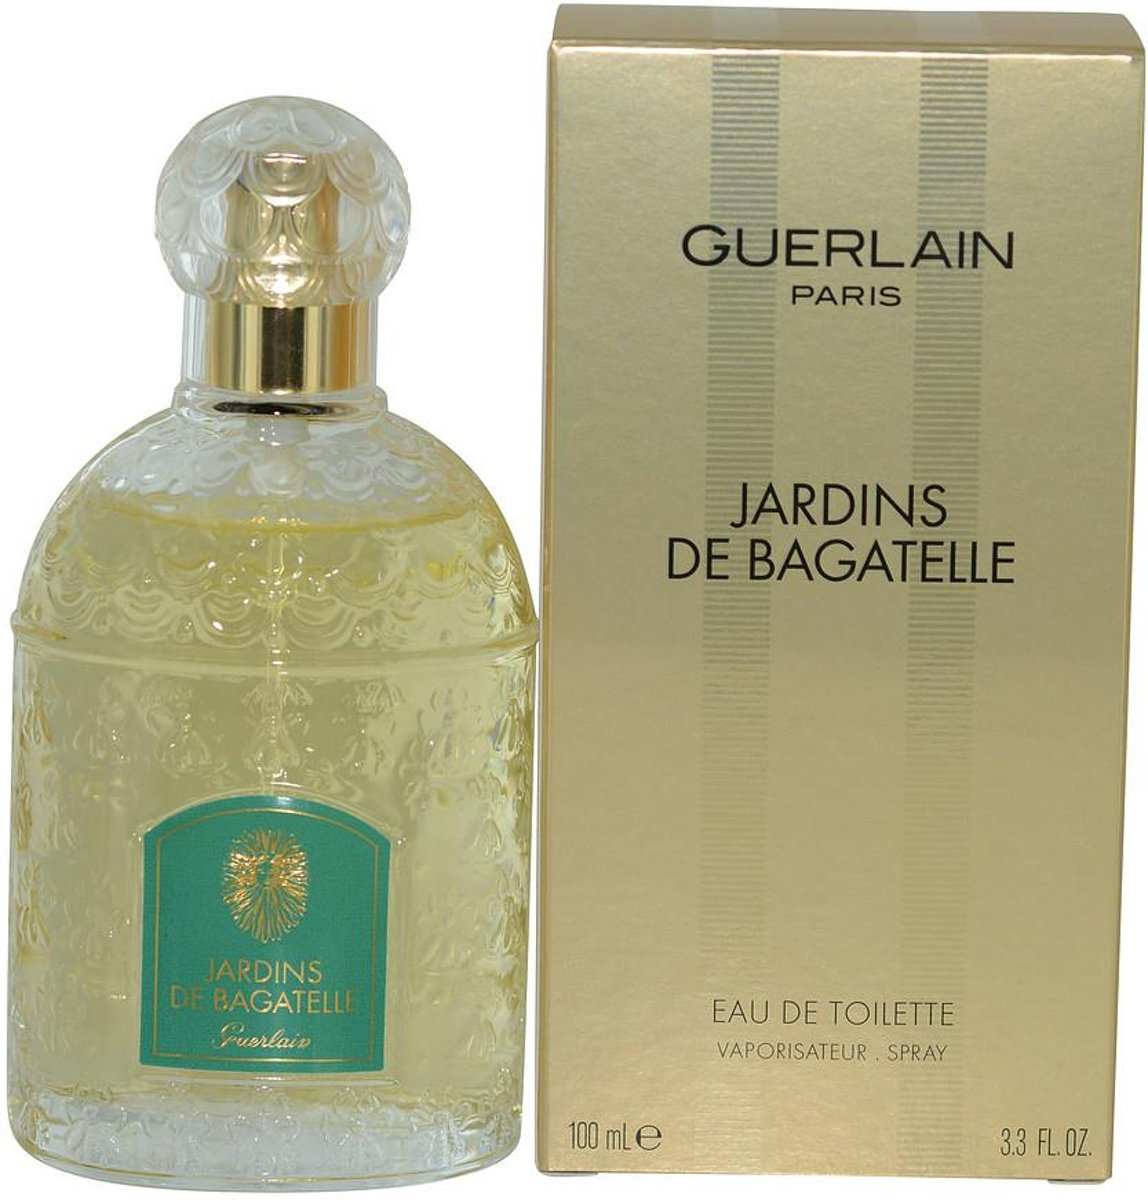 Guerlain Jardins De Bagatelle 100 ml - Eau De Toilette Spray Women